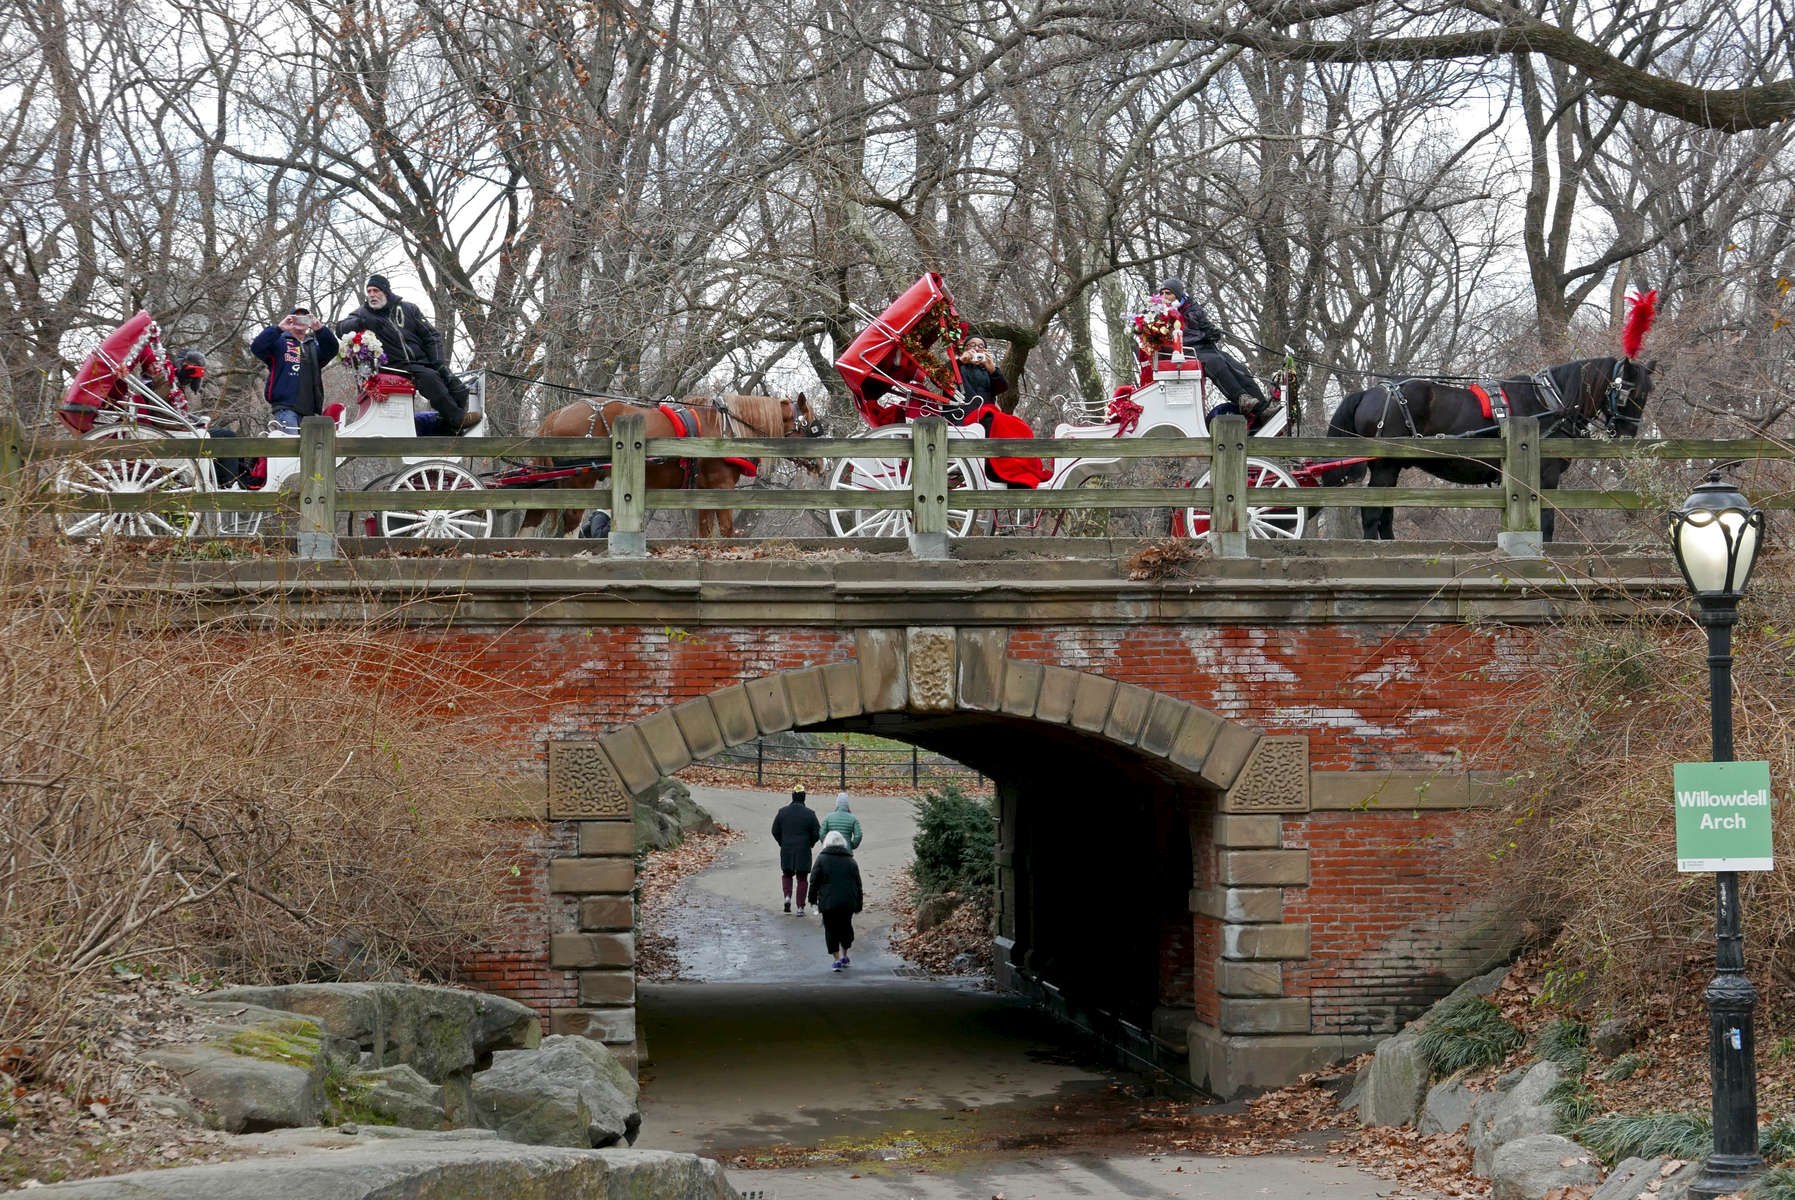 Horse-drawn carriages, Central Park, NYC. Jon Chase photo